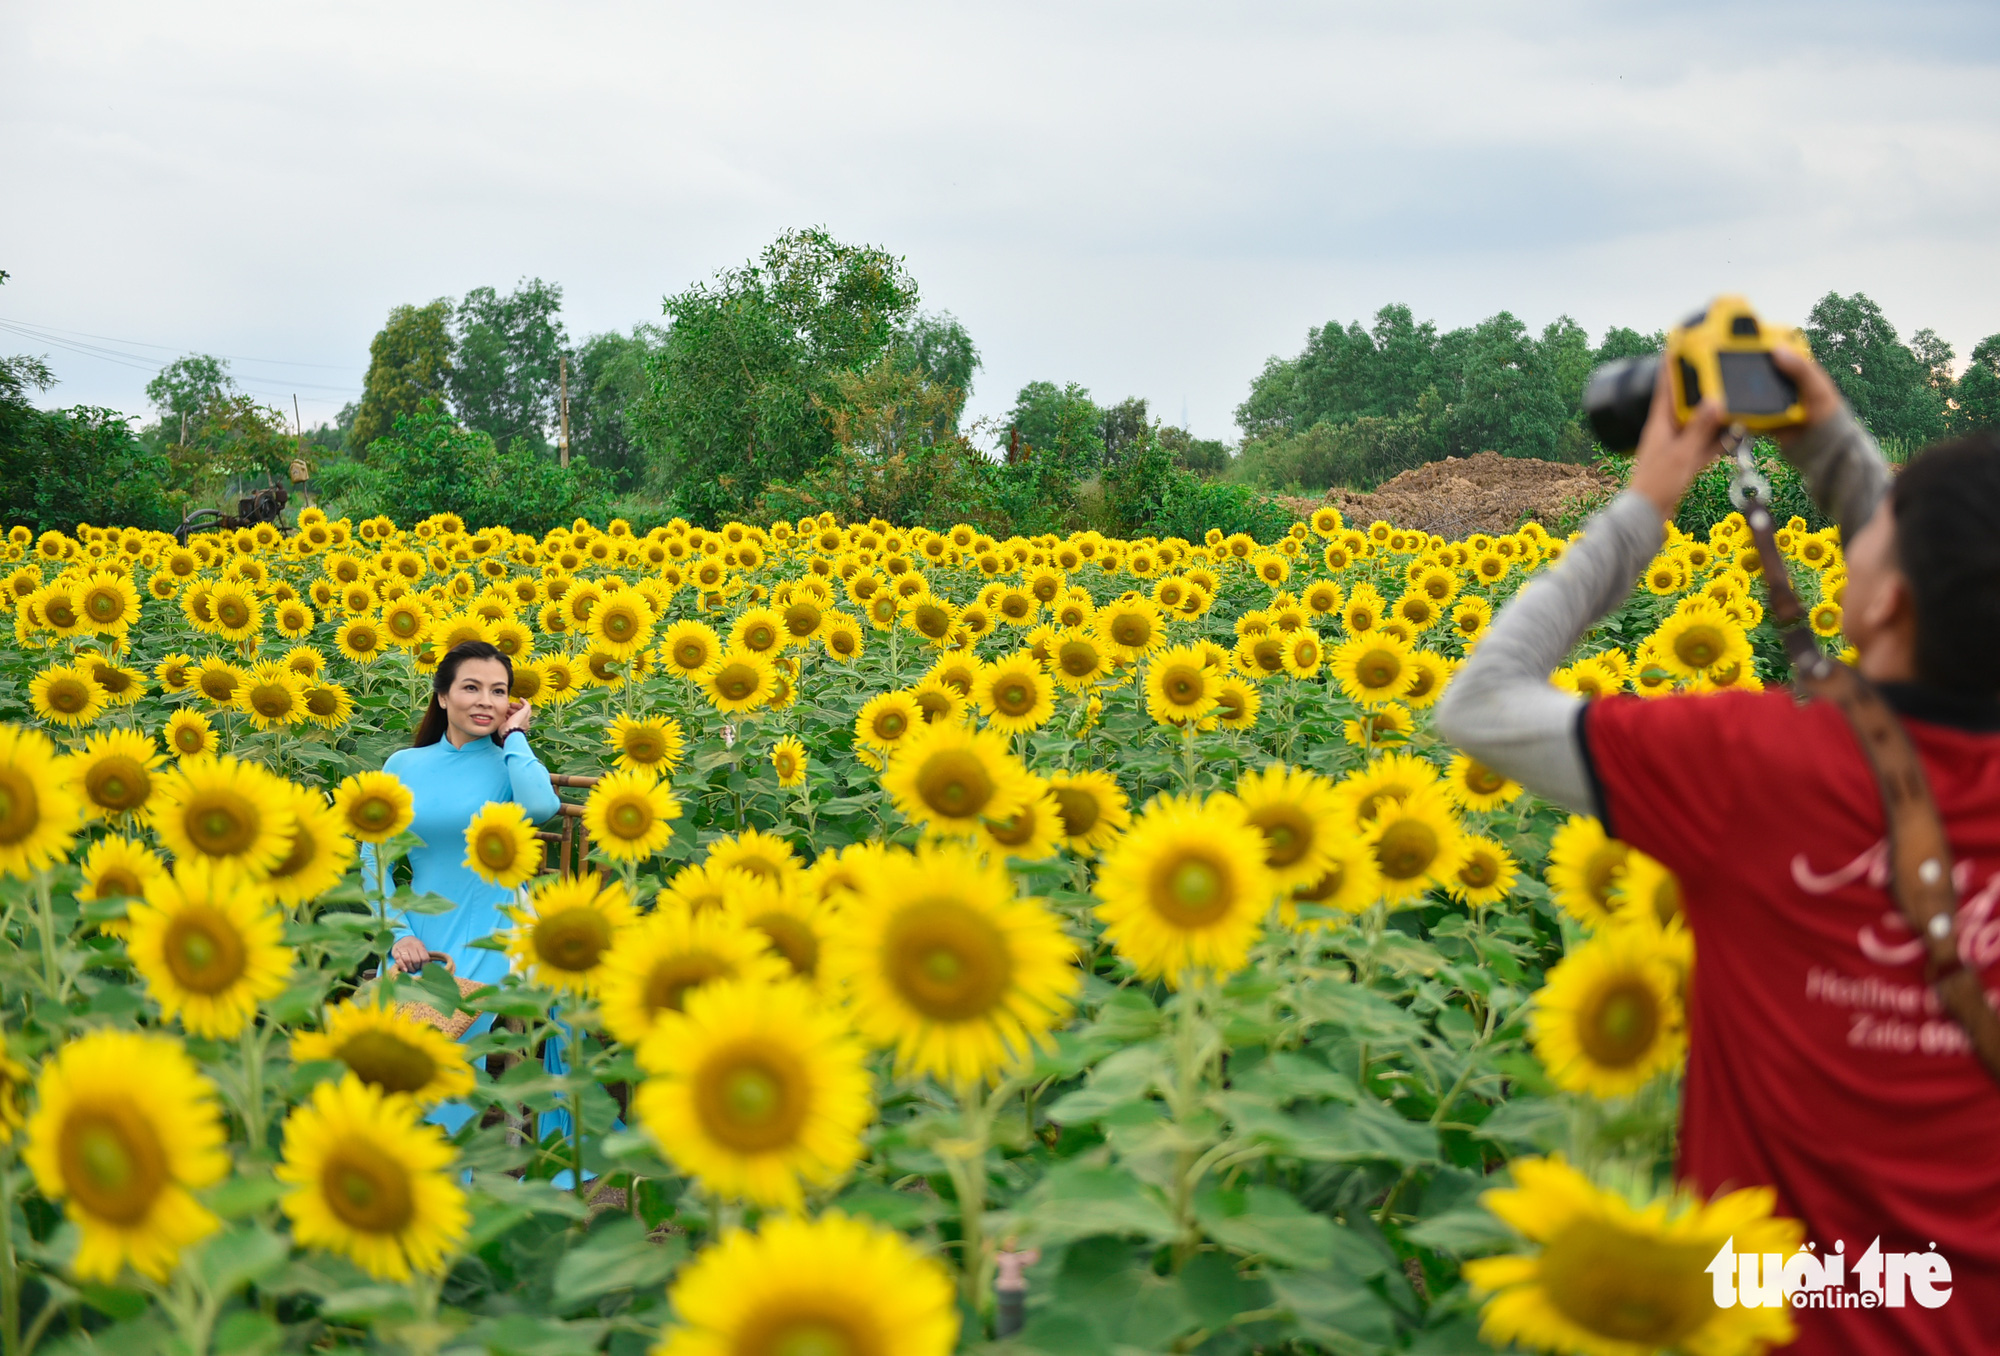 A woman in 'ao dai' pose among sunflowers as her friend takes photos of her at a sunflower garden located in District 9, Ho Chi Minh City, Vietnam. Photo: Ngoc Phuong / Tuoi Tre